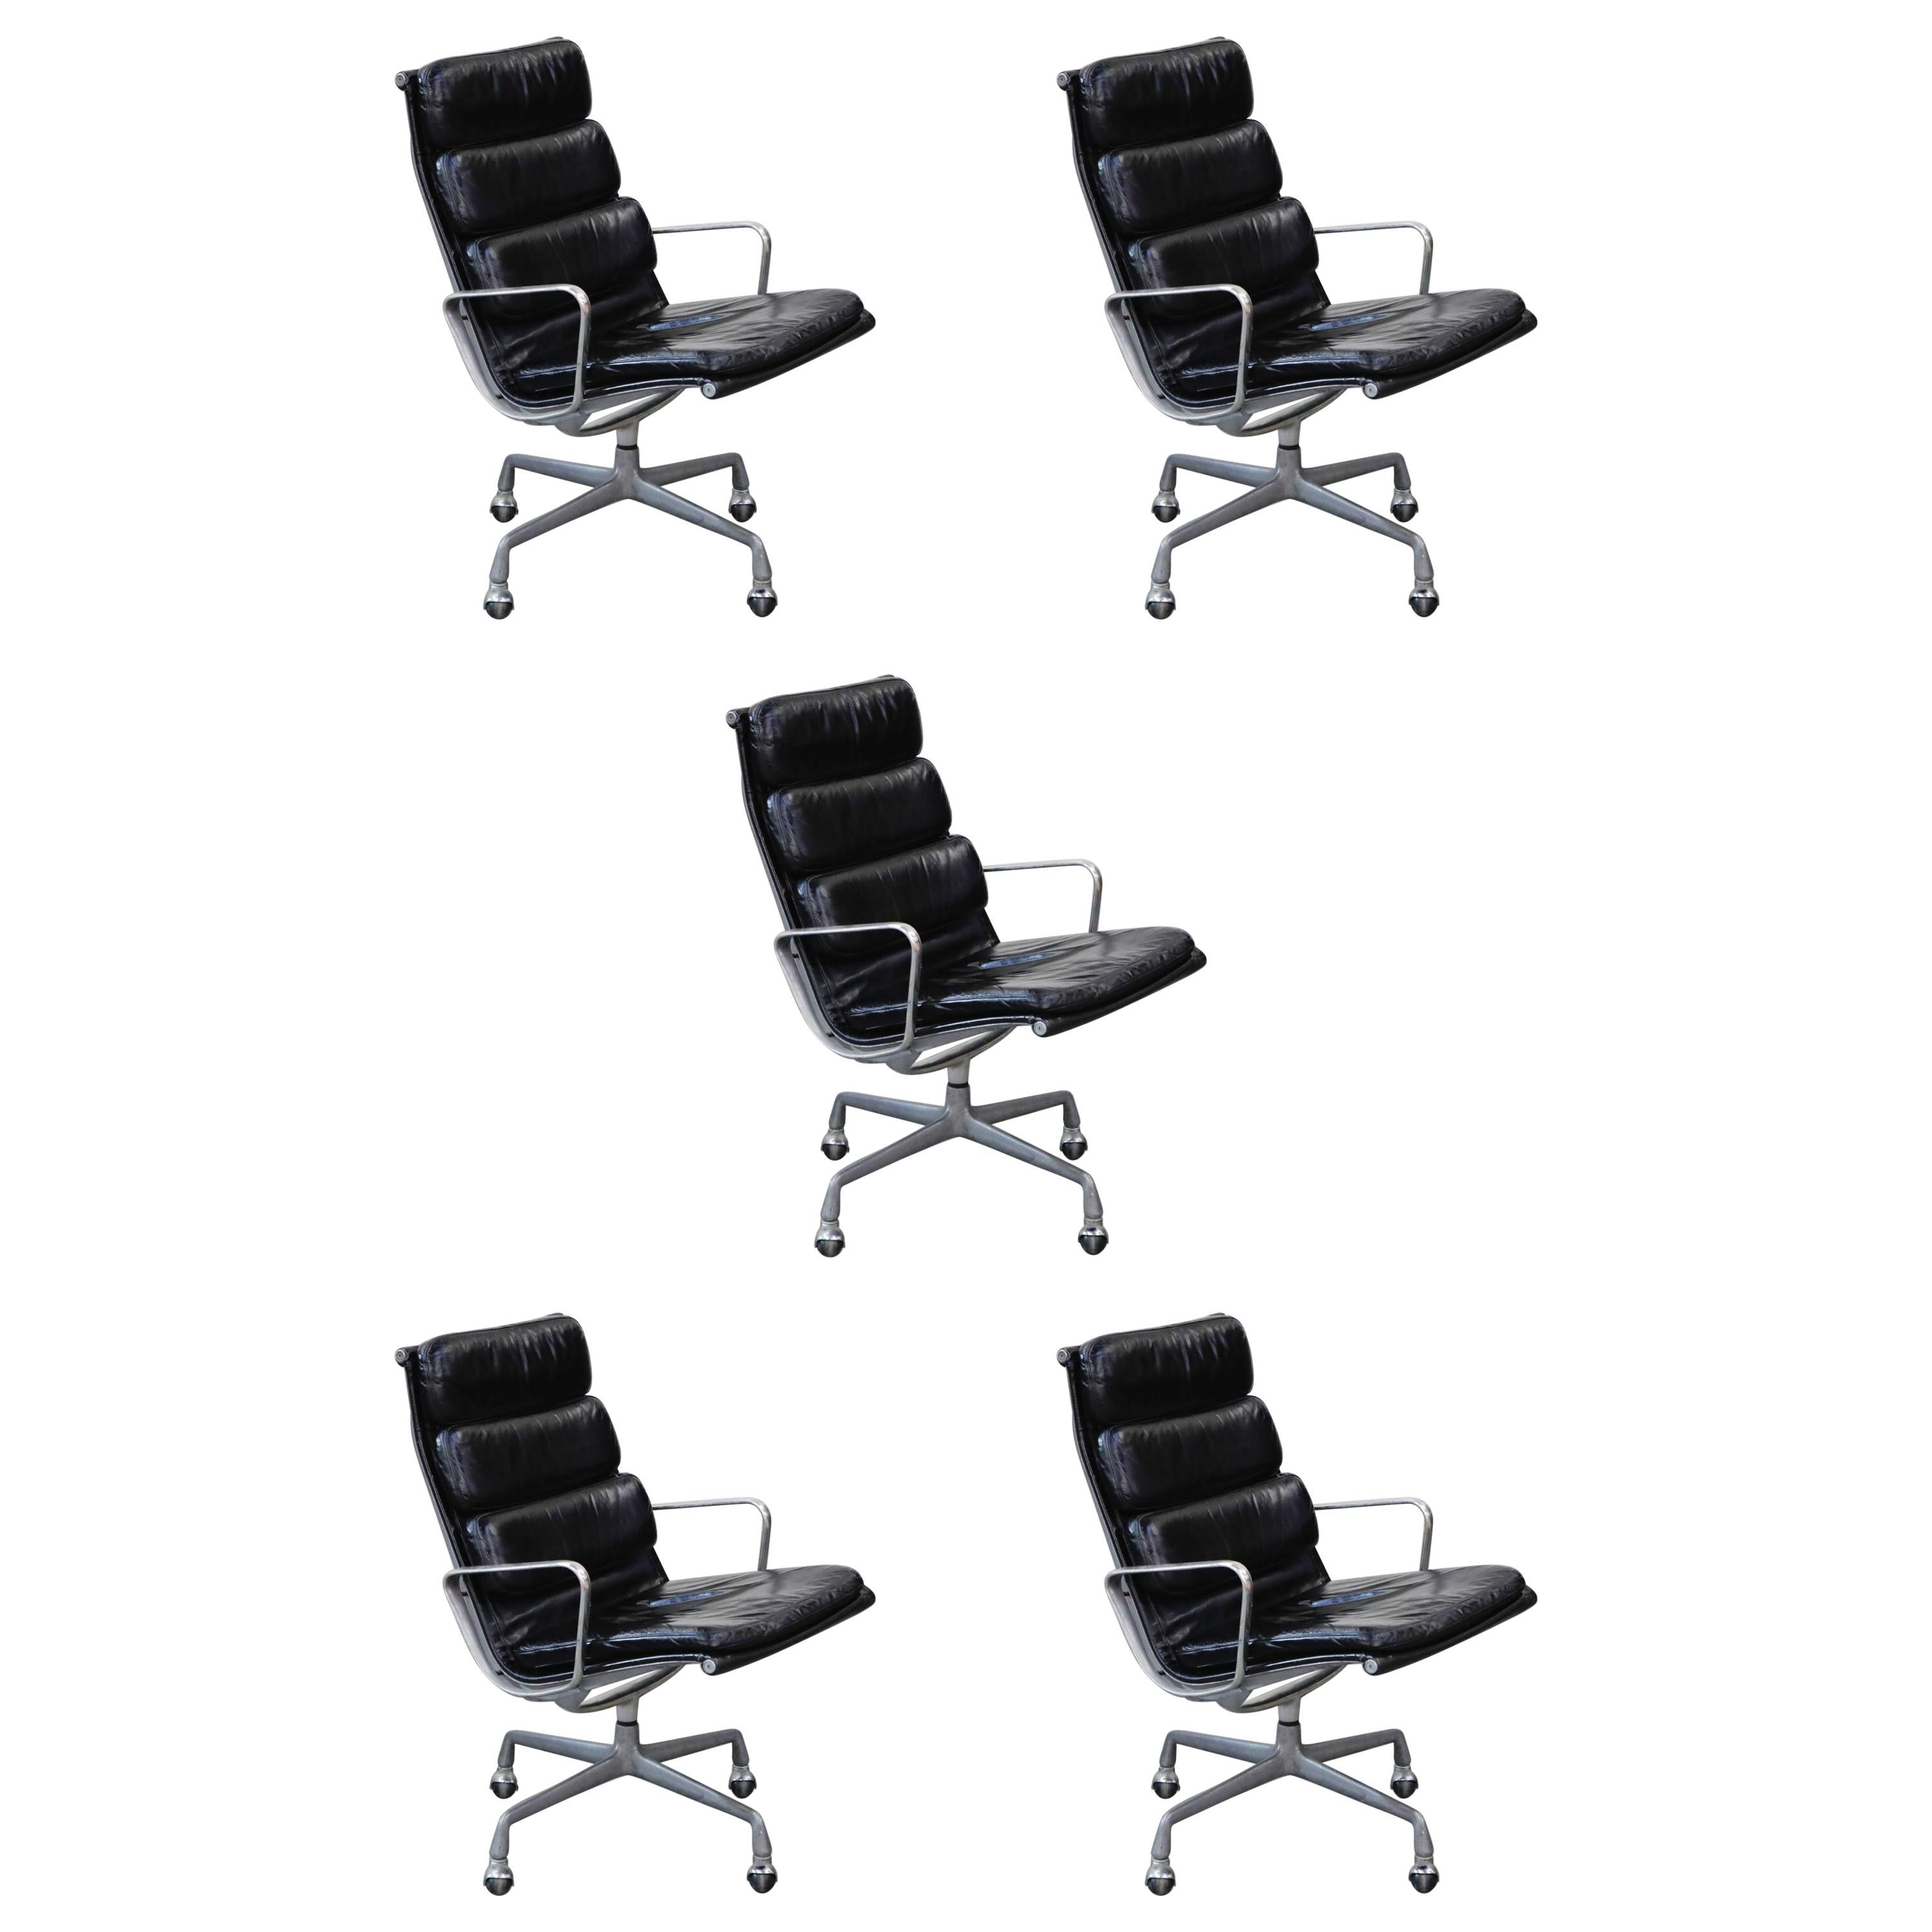 Charles Eames for Herman Miller Soft Pad Swivel Lounge Chairs, 1970s, Signed